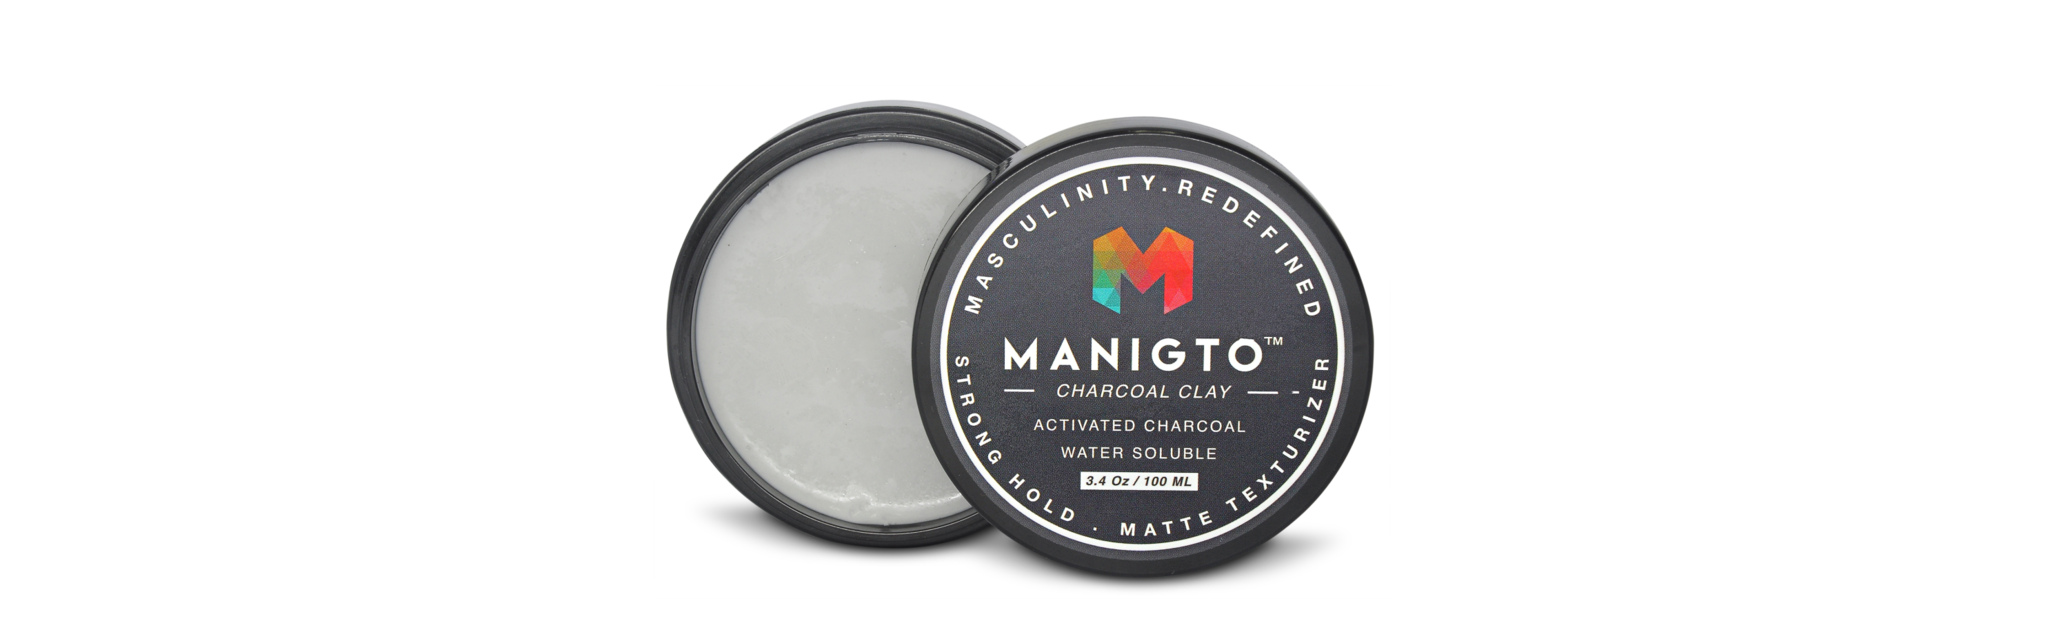 CHARCOAL CLAY 100ML / 3.5OZ, HAIR GROOMING - MANIGTO